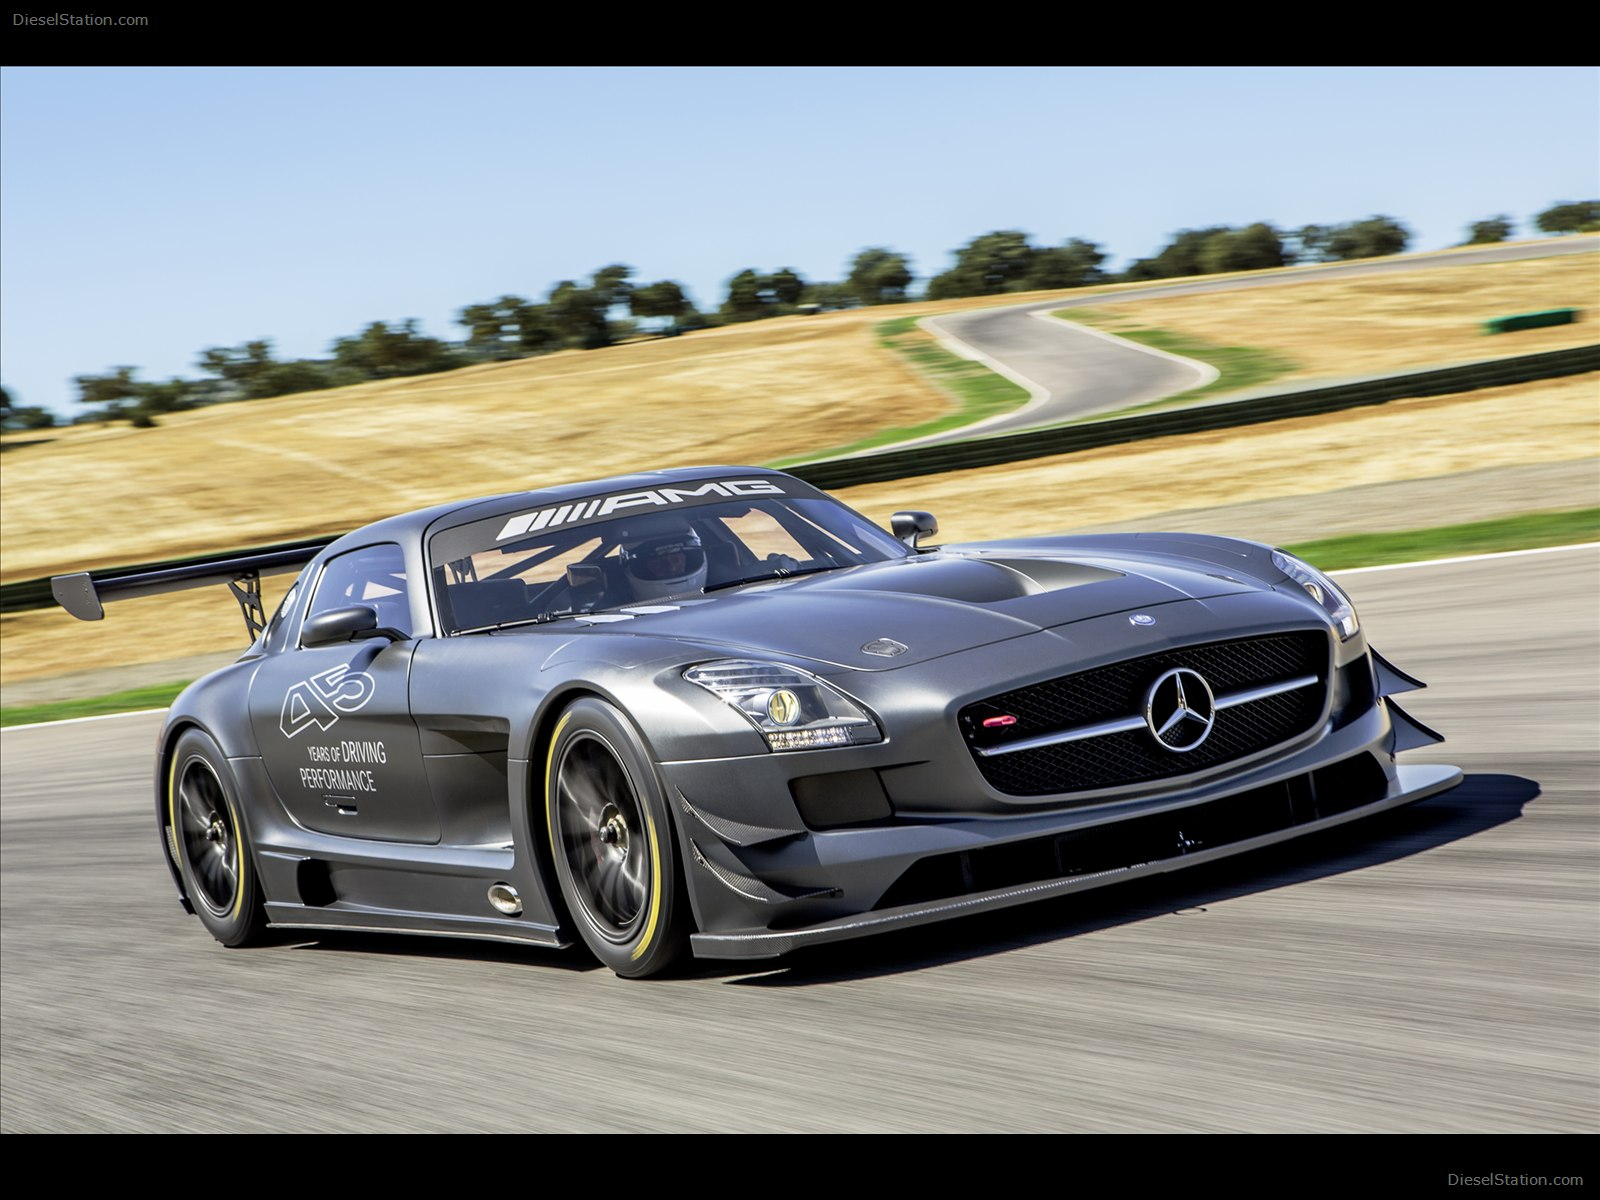 2017 mercedes benz sls amg f1 safety car car photos